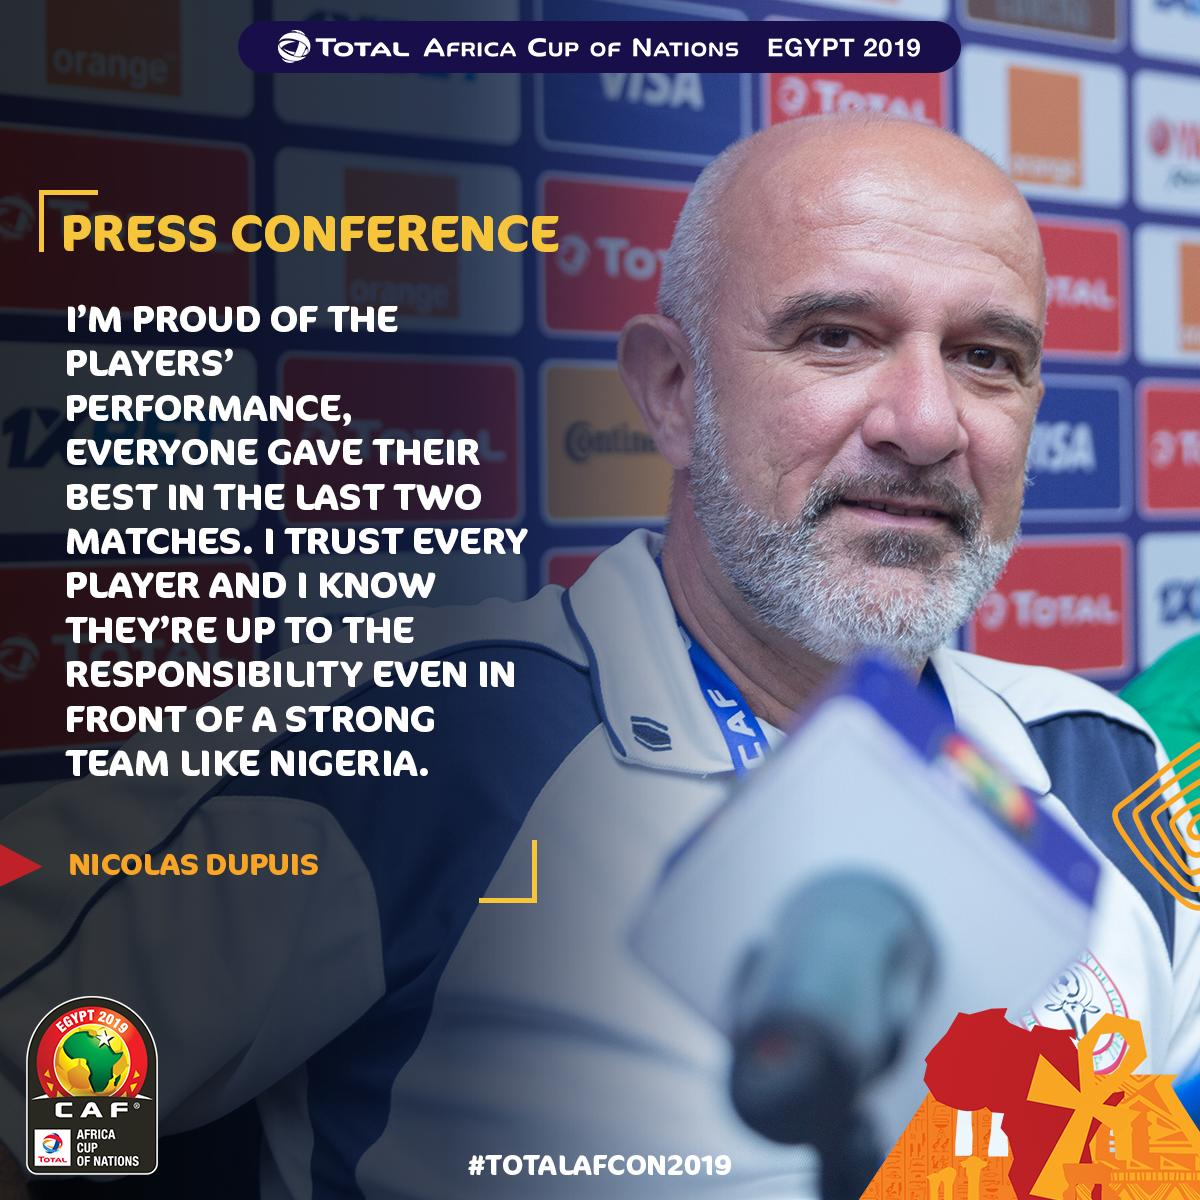 When a proud manager is talking  #ALEFABAREA  #TotalAFCON2019<br>http://pic.twitter.com/odVnF9es8W